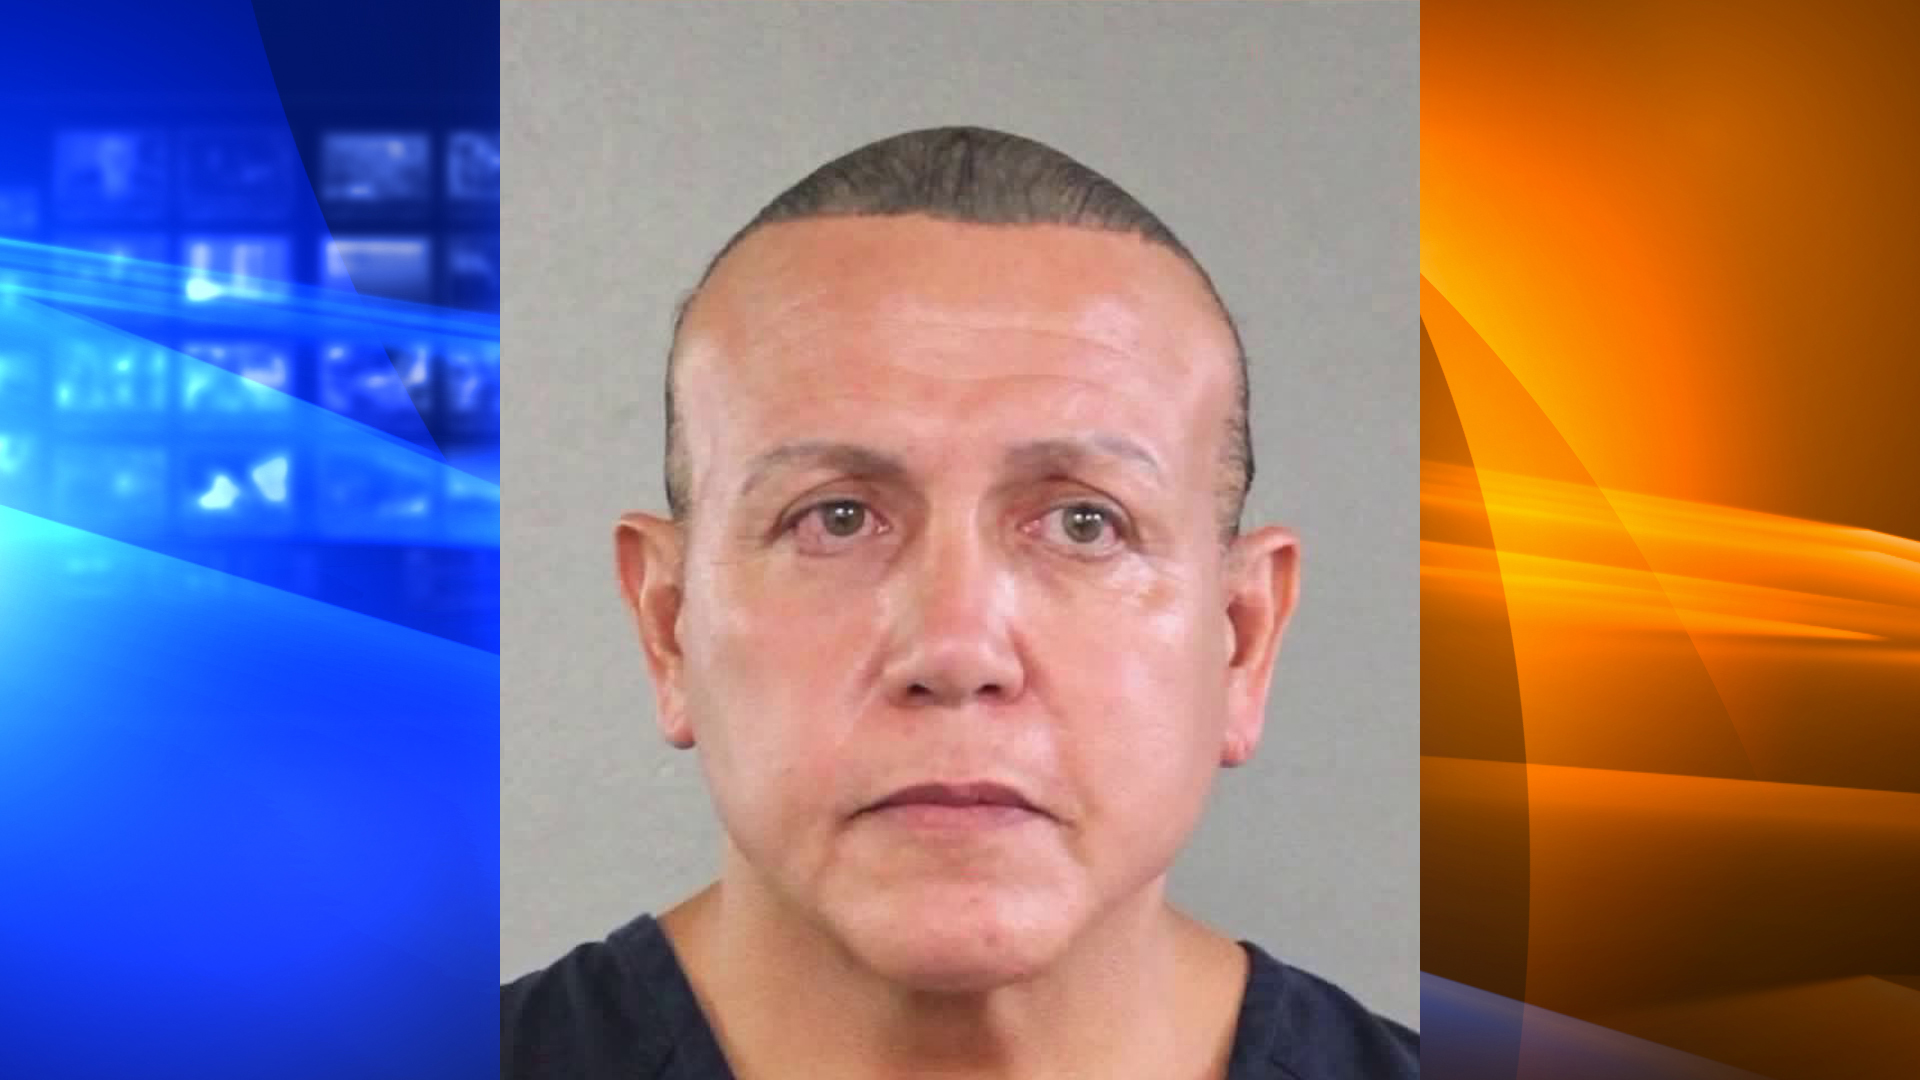 Cesar Sayoc is seen in a booking photo from 2015 released by the Broward County Sheriff's Office and obtained by CNN.